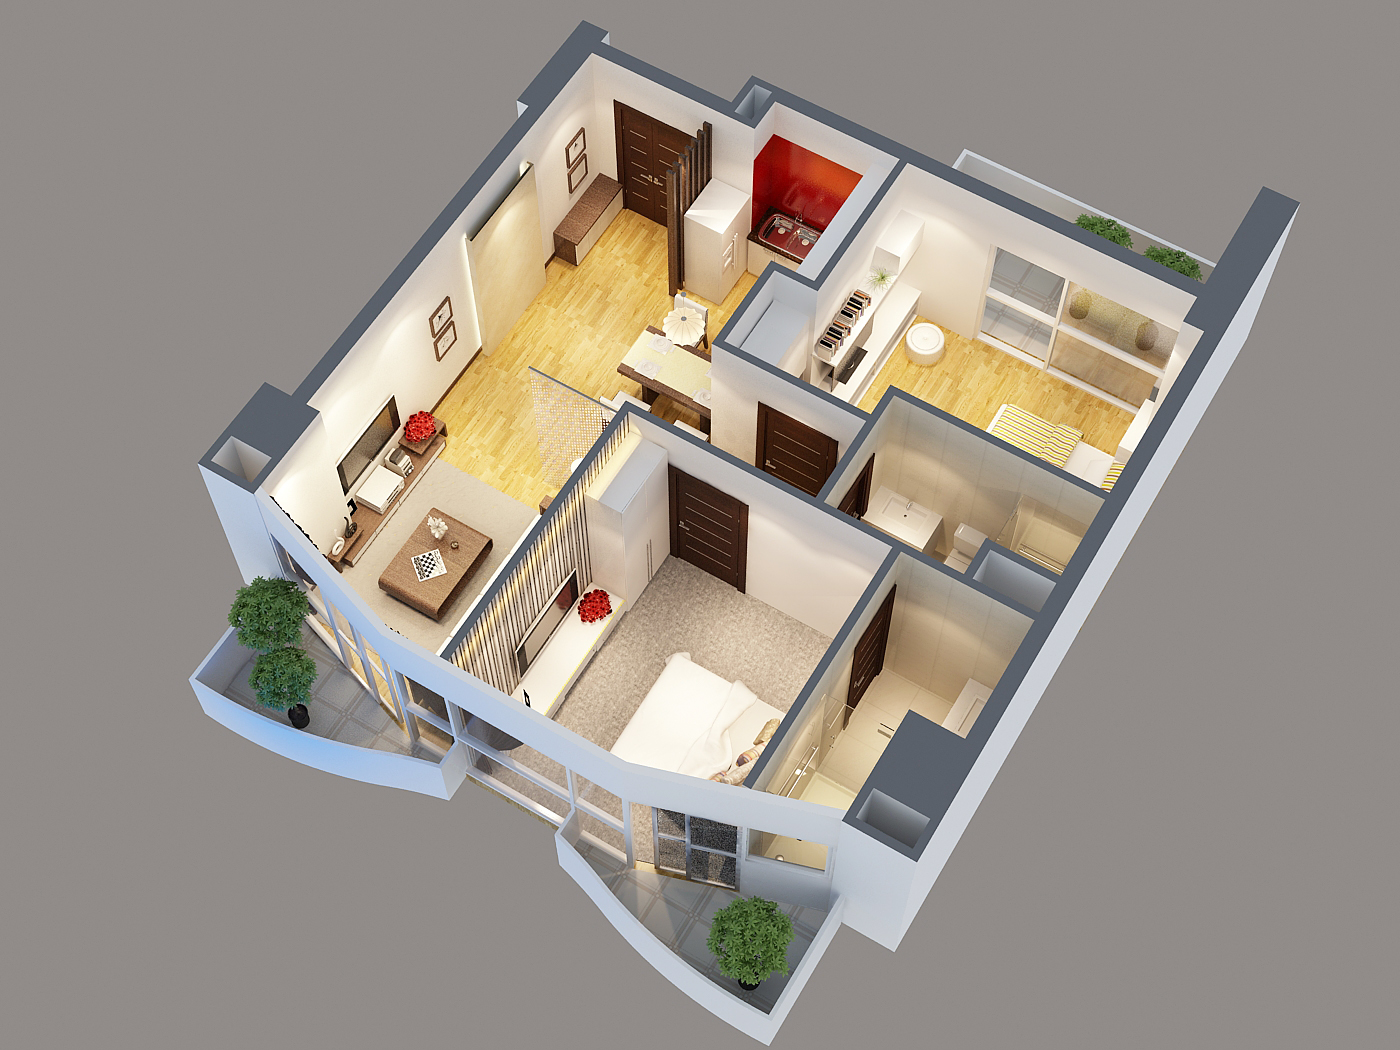 Detailed interior apartment 3d model 3d model buy for Apartment 3d